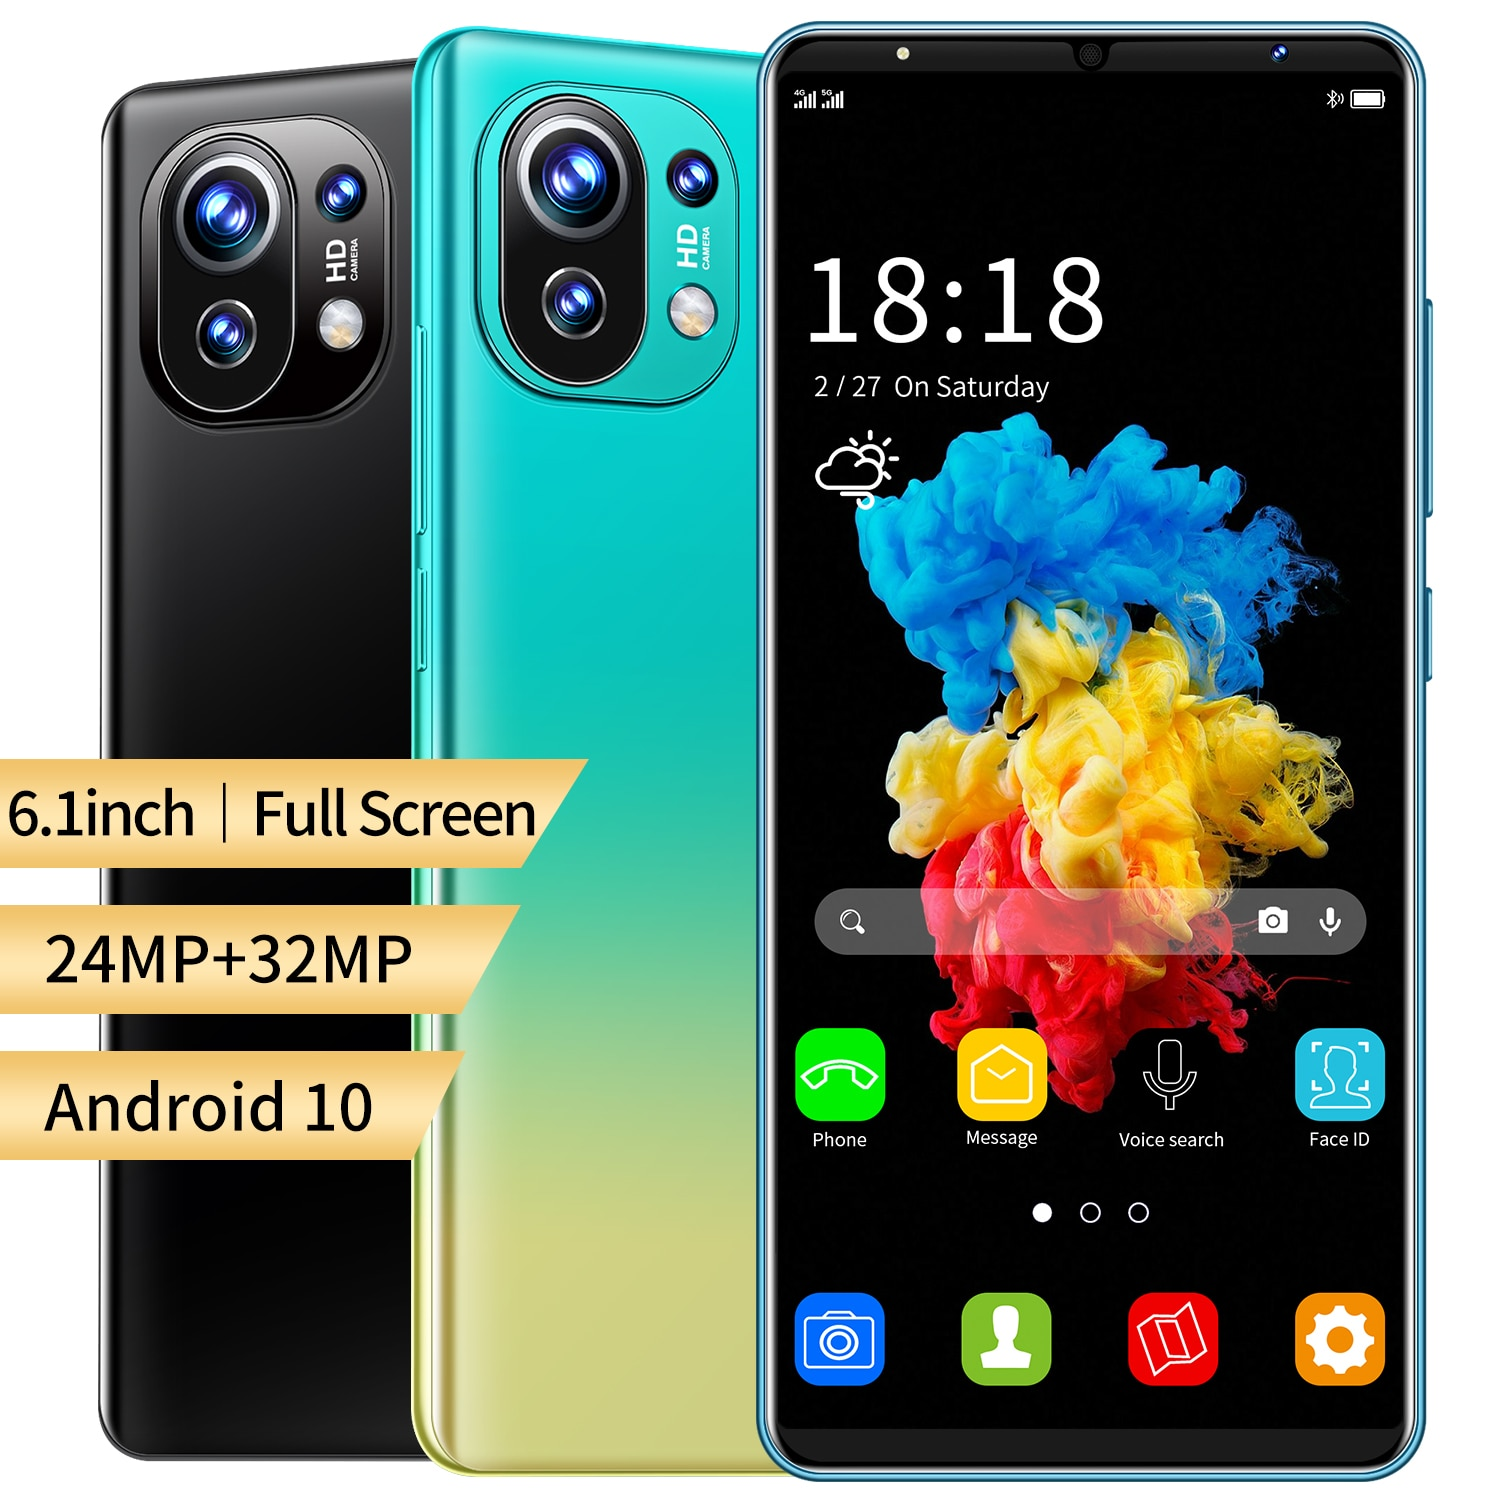 2021 New Arrival M11 Cheap Smart Phone 6GB RAM 128GB ROM 6.1 Inch 1440*3200 Dual SIM 10 Core MTK6889